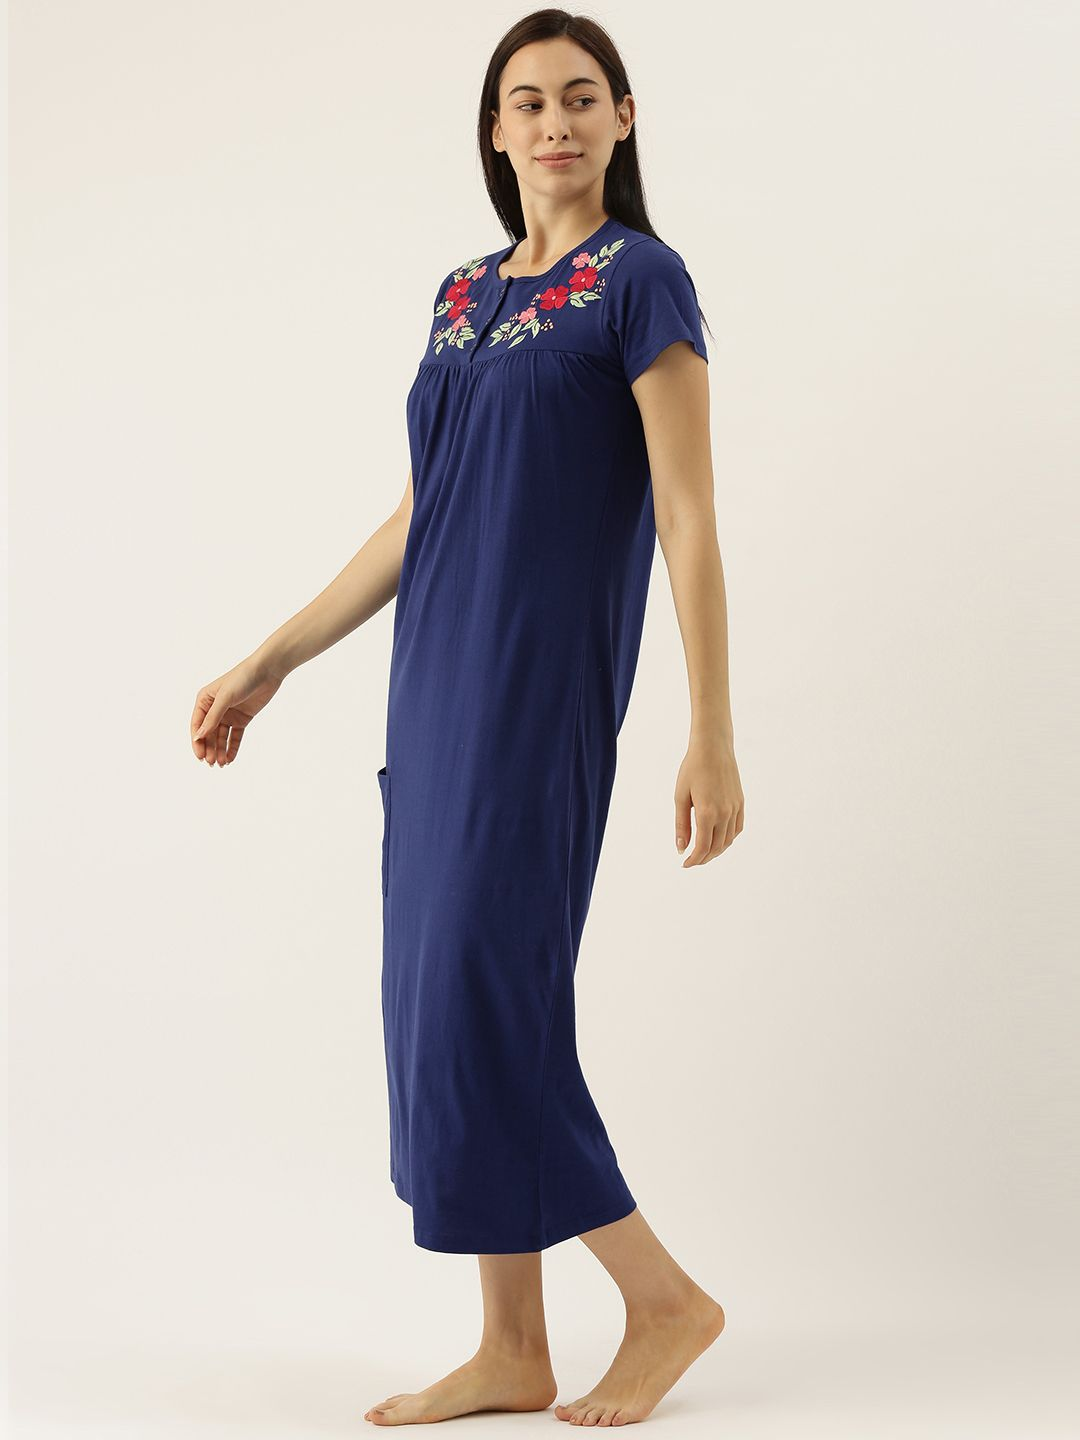 Blue Night Dress with Pretty Flowers Embroidery